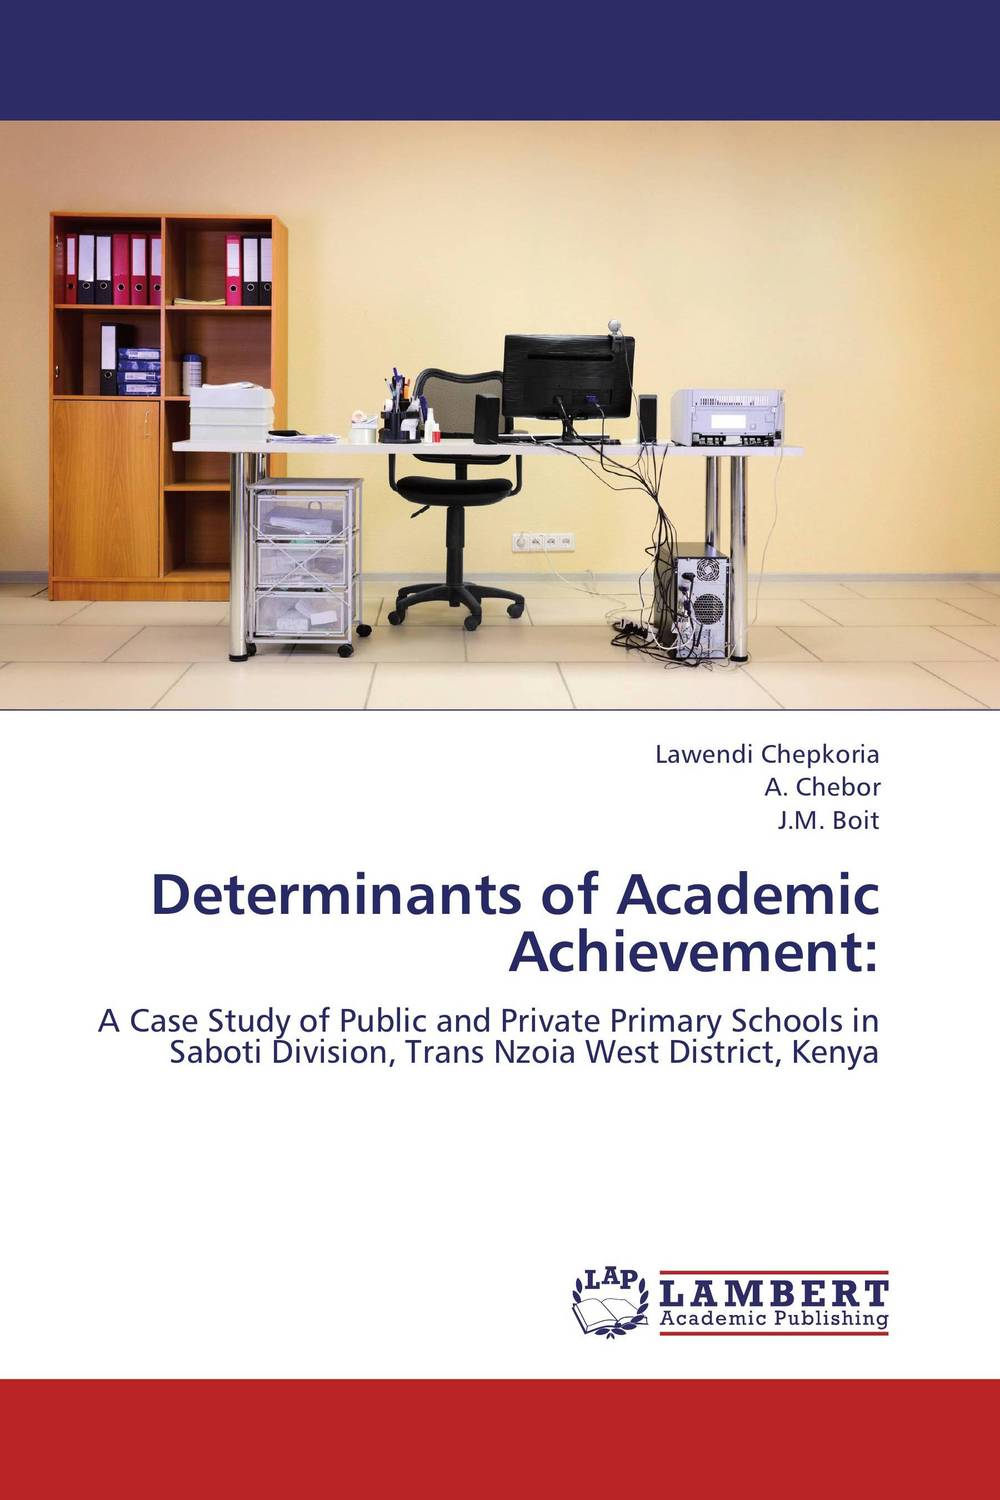 Determinants of Academic Achievement: ruthaychonnee sittichai determining factors for academic achievement and attitude of students